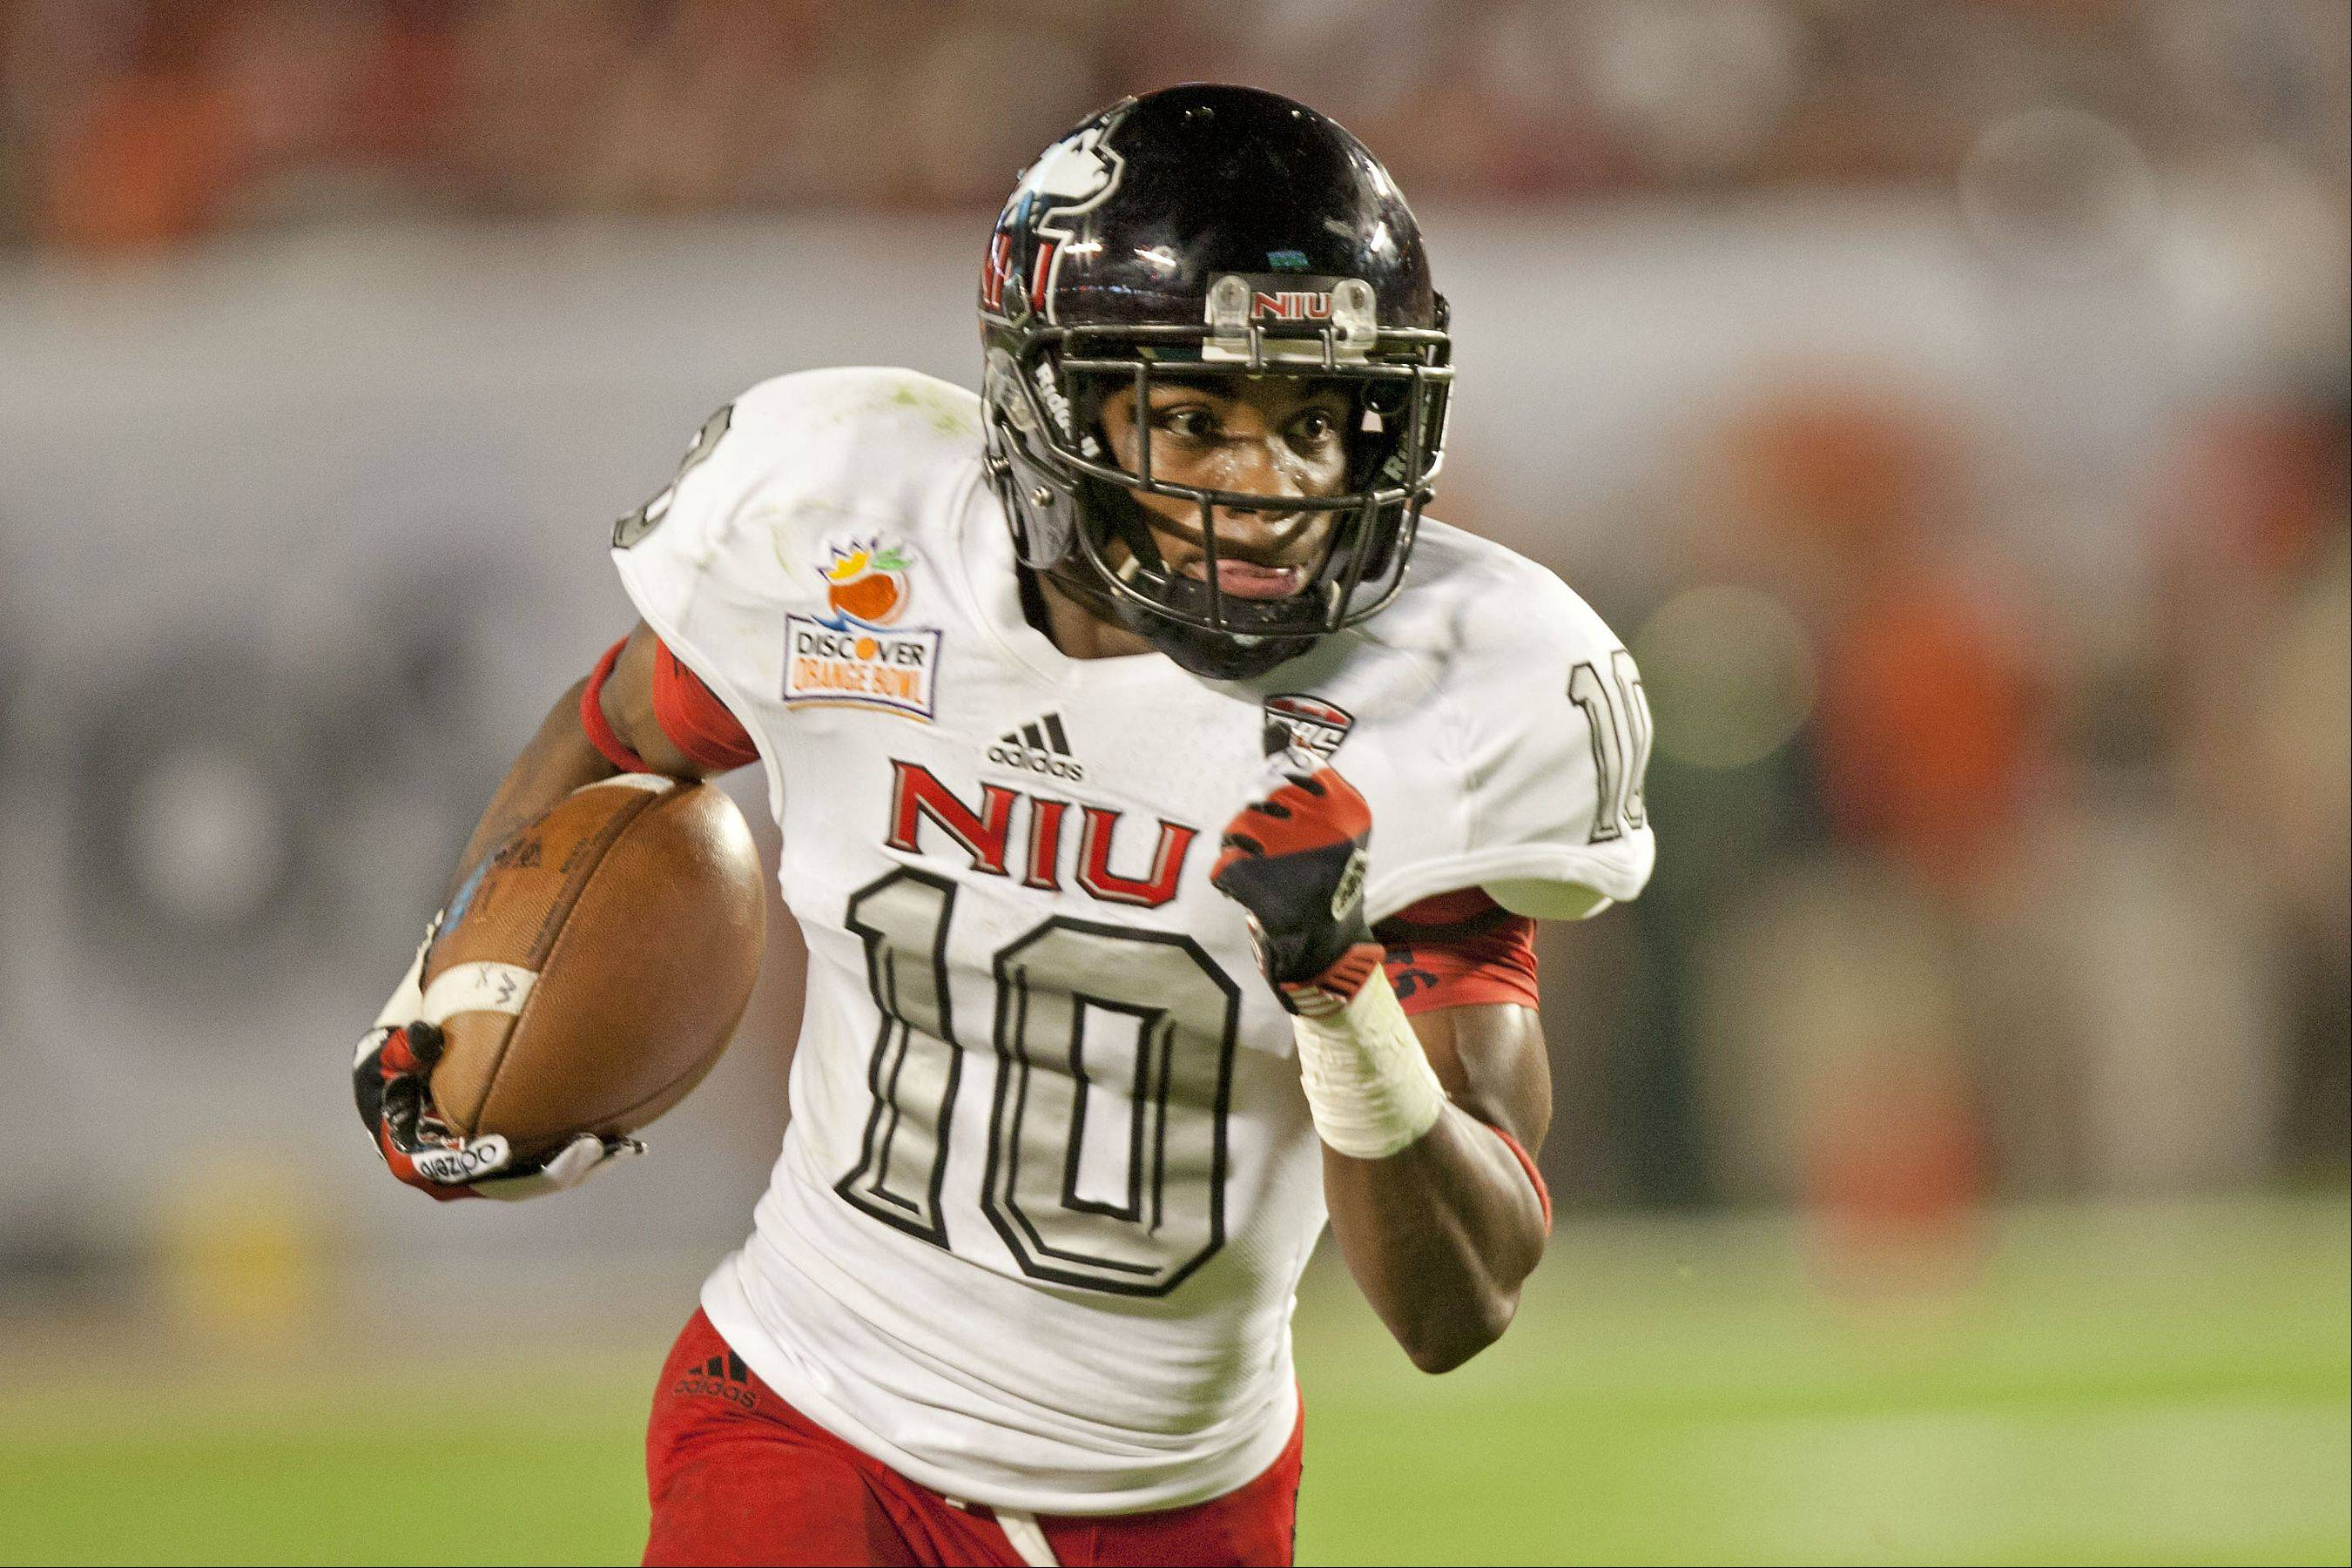 NIU receiver and kick returner Tommy Lee Lewis should be a key target for record-setting quarterback Jordan Lynch next season.